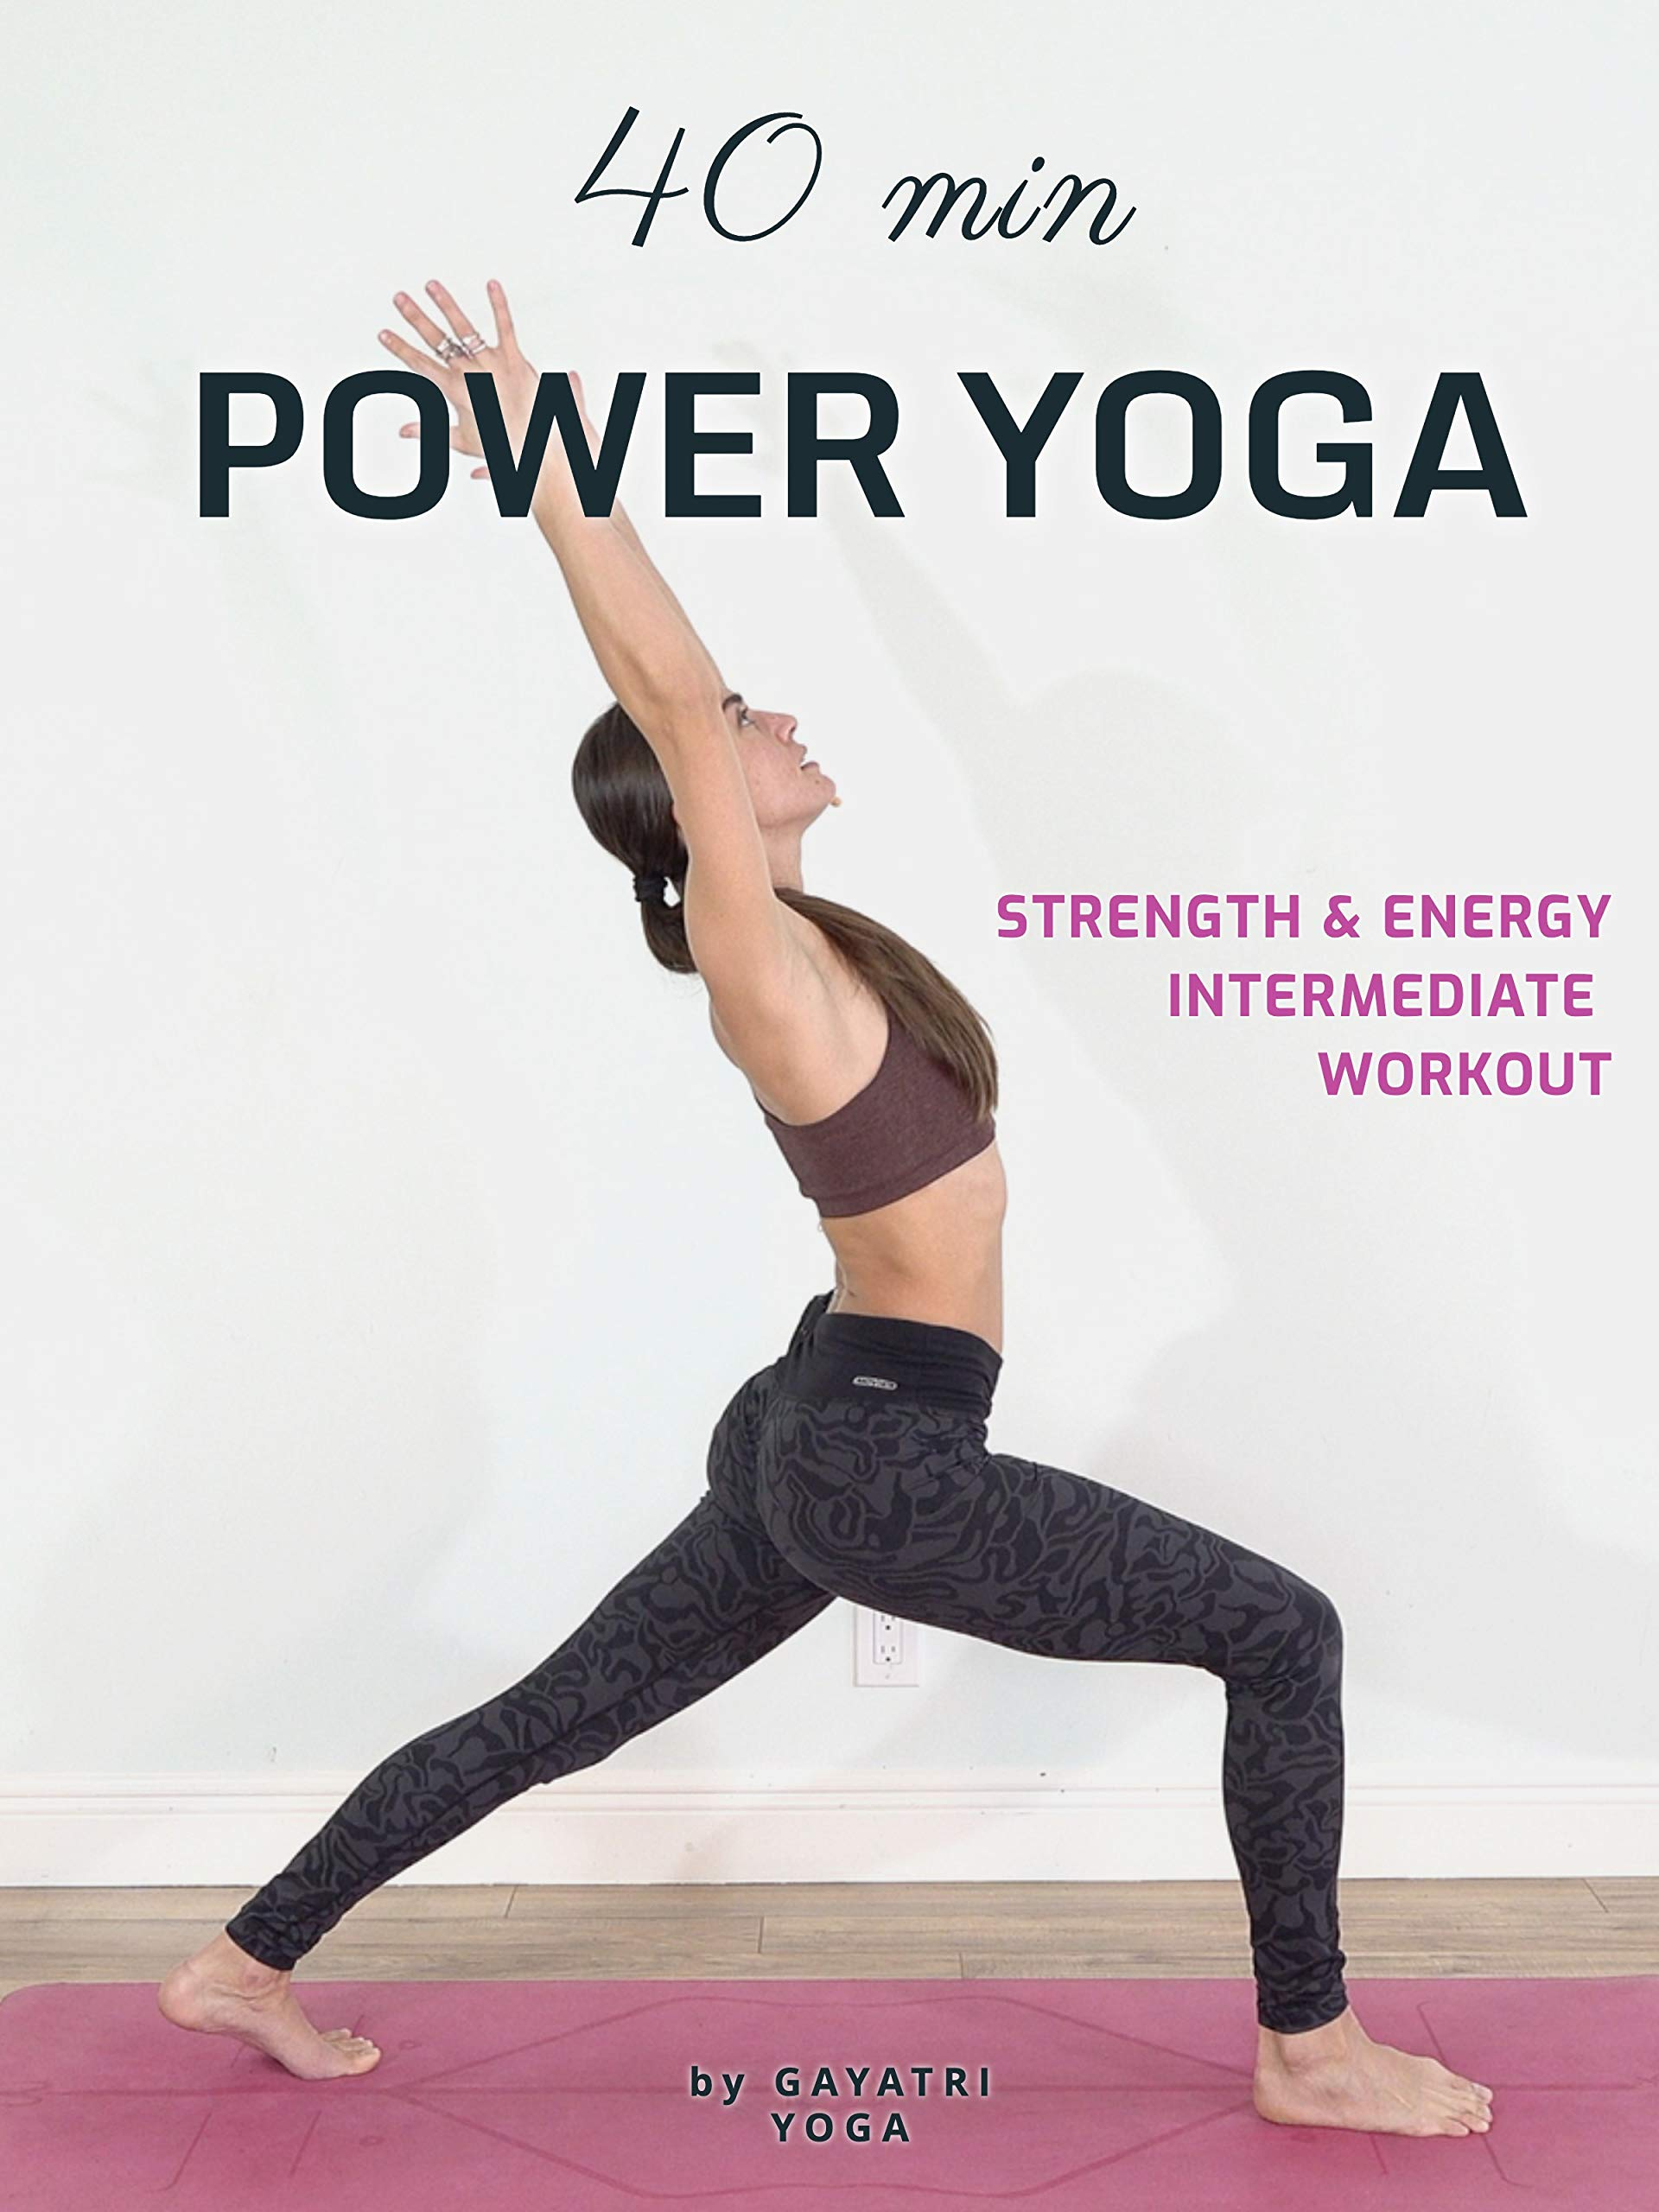 40 Min Power Yoga - Strength & Energy Intermediate Workout - Gayatri Yoga